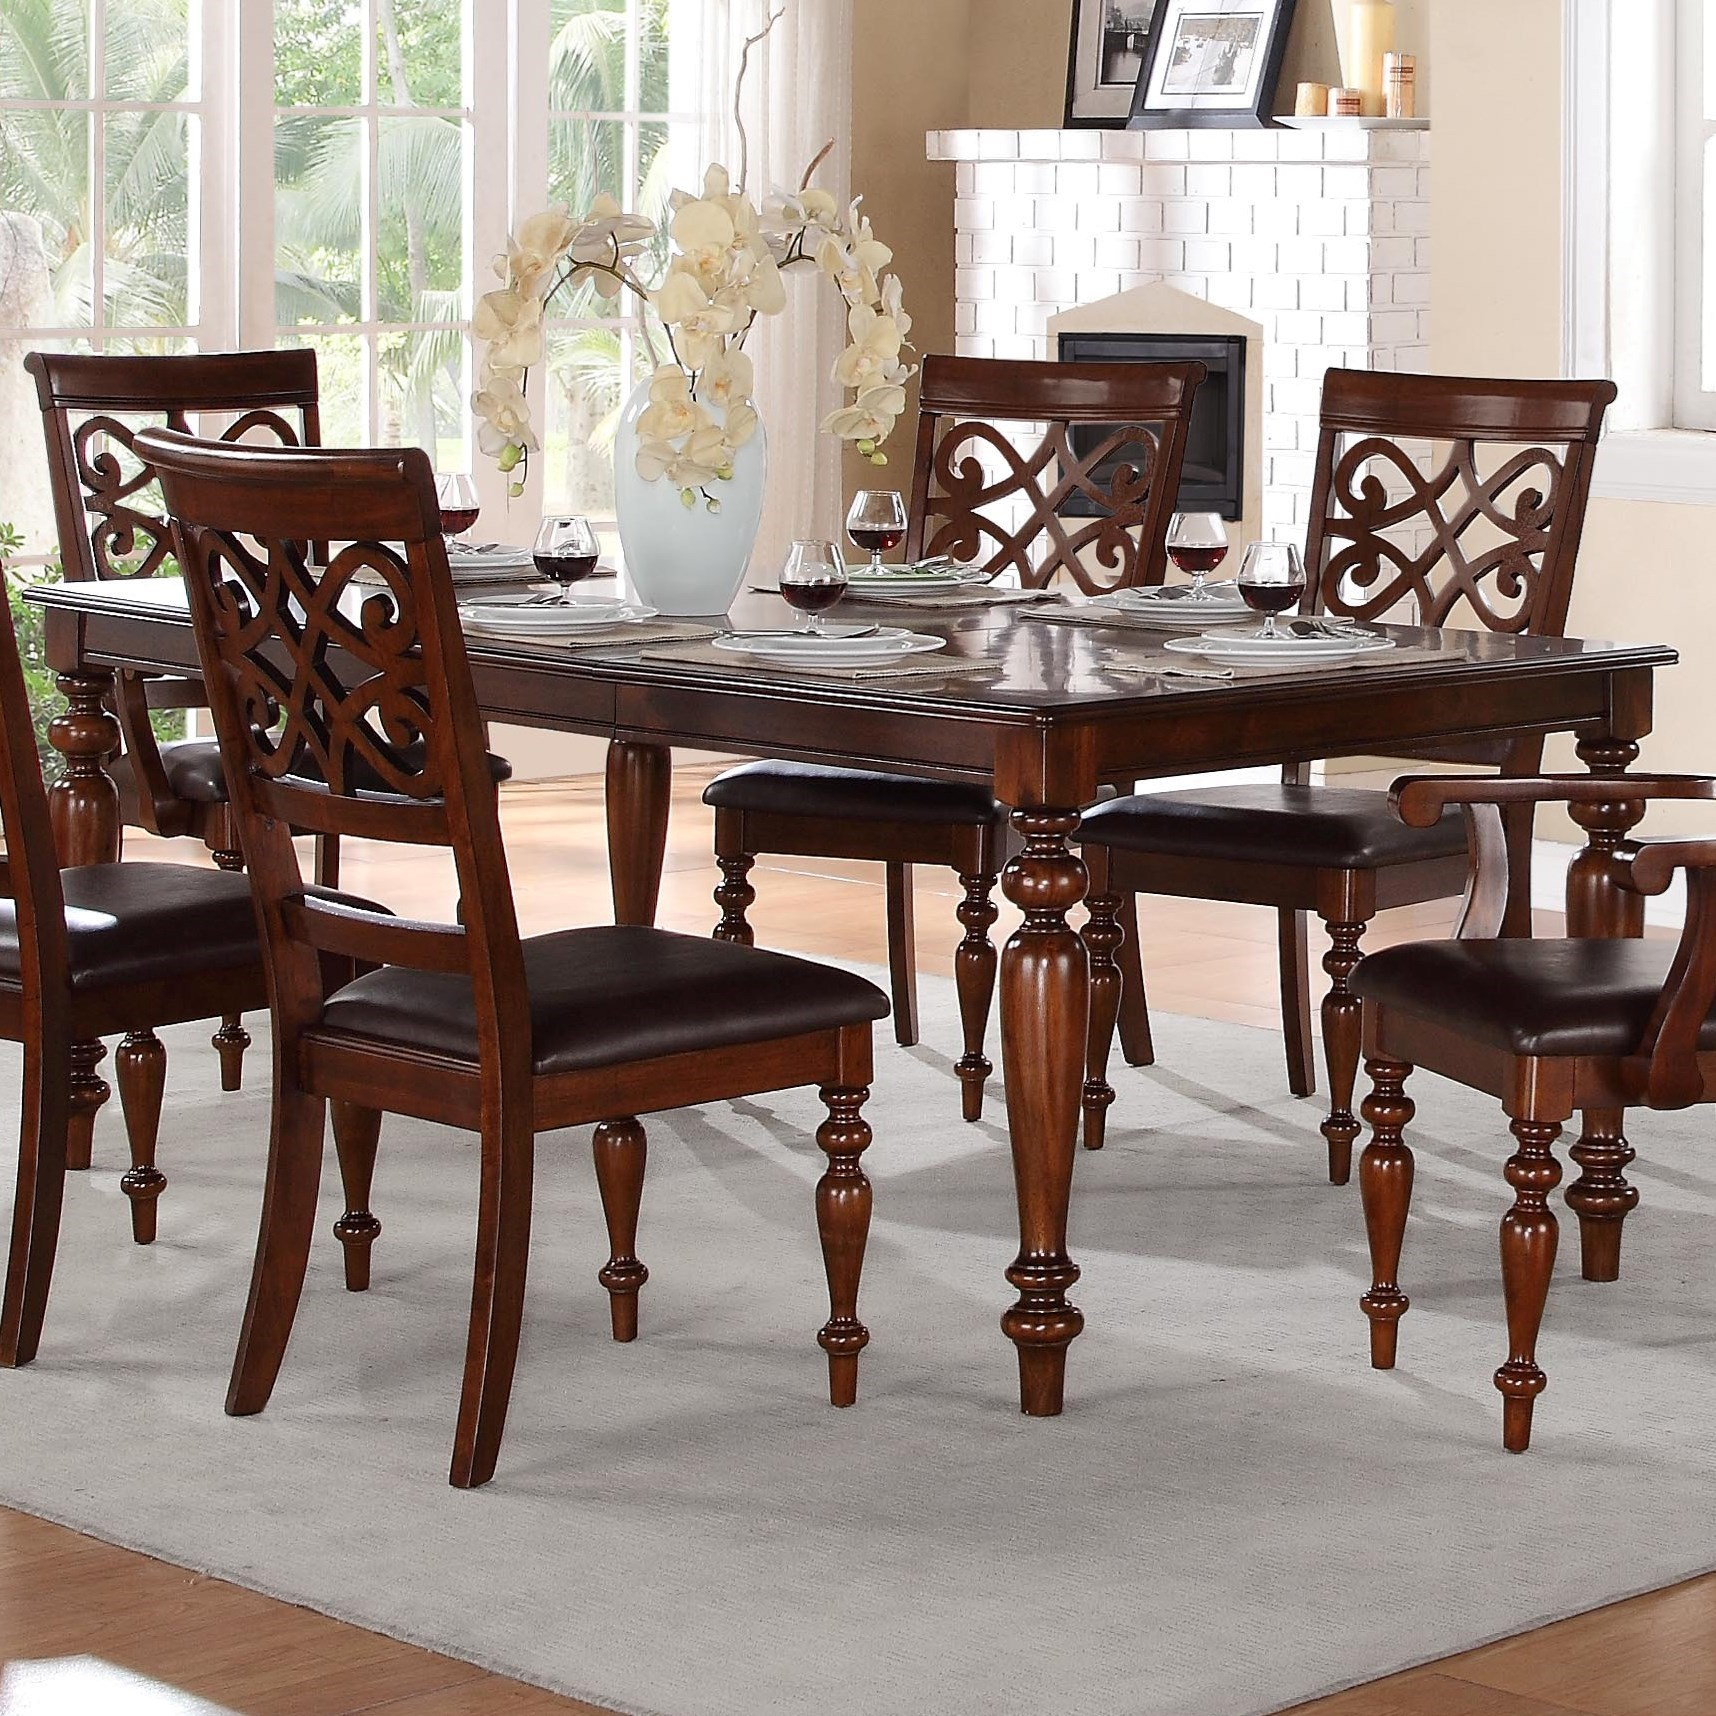 Traditional Dining Room Furniture Sets: Homelegance Creswell 5056-78 Traditional Formal Dining